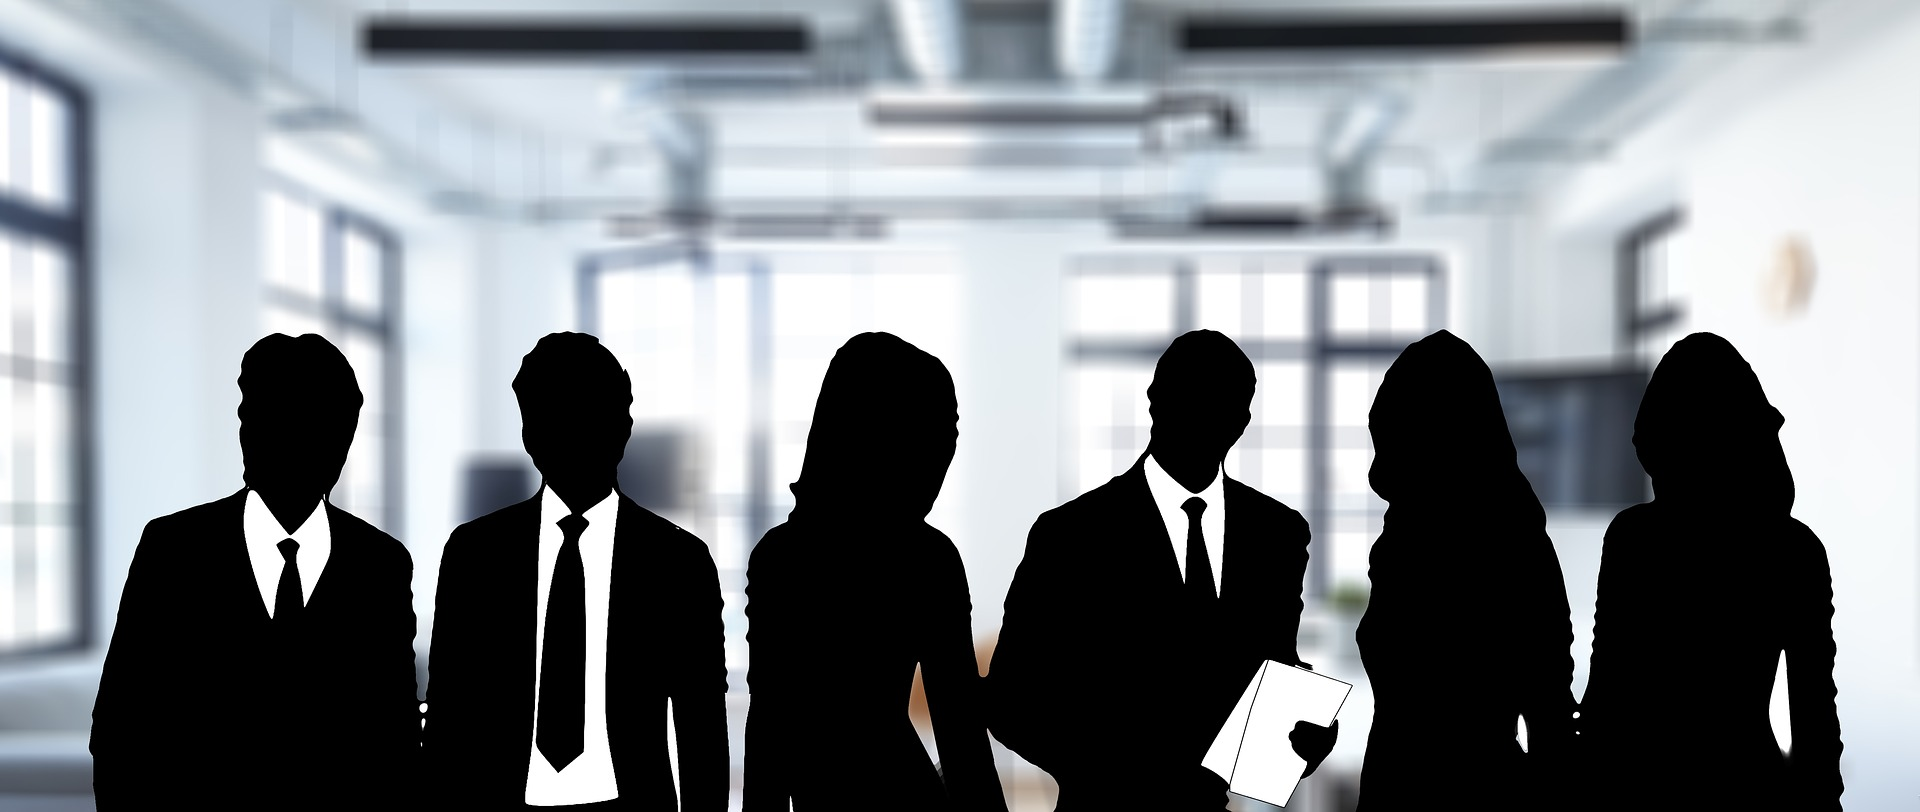 Silhouette group of professional people